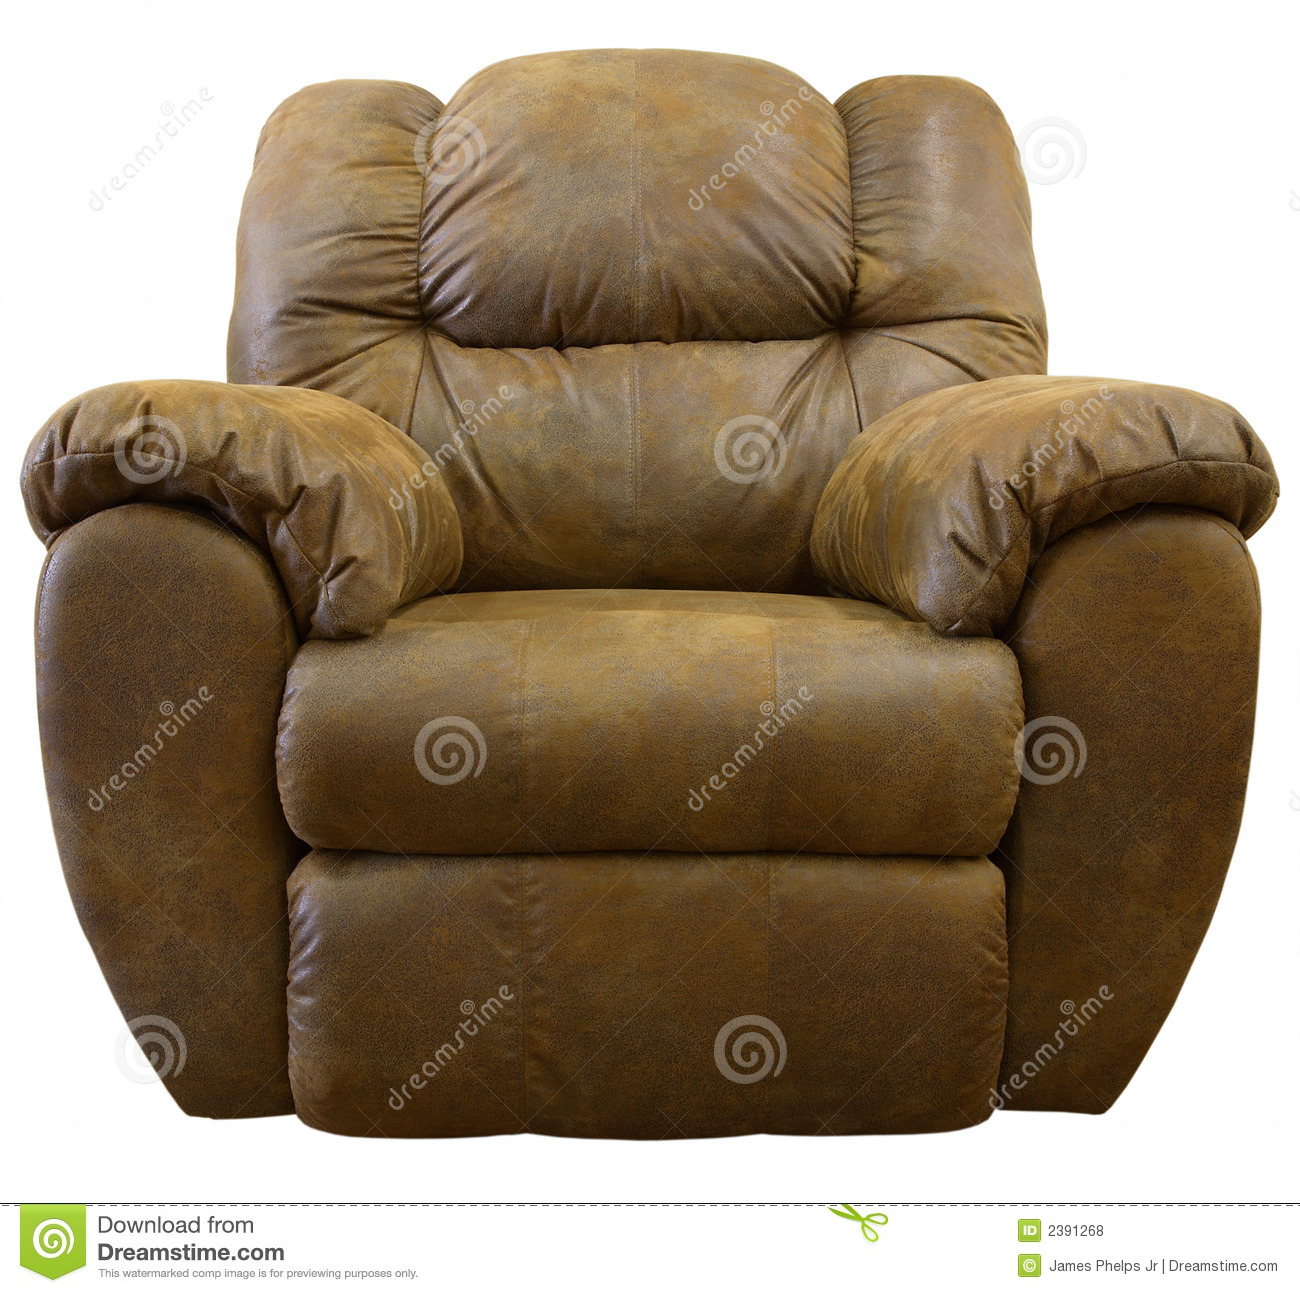 chair fabric recliner ...  sc 1 st  Dreamstime.com & Micro Suede Rocker Recliner Royalty Free Stock Photos - Image: 2391268 islam-shia.org